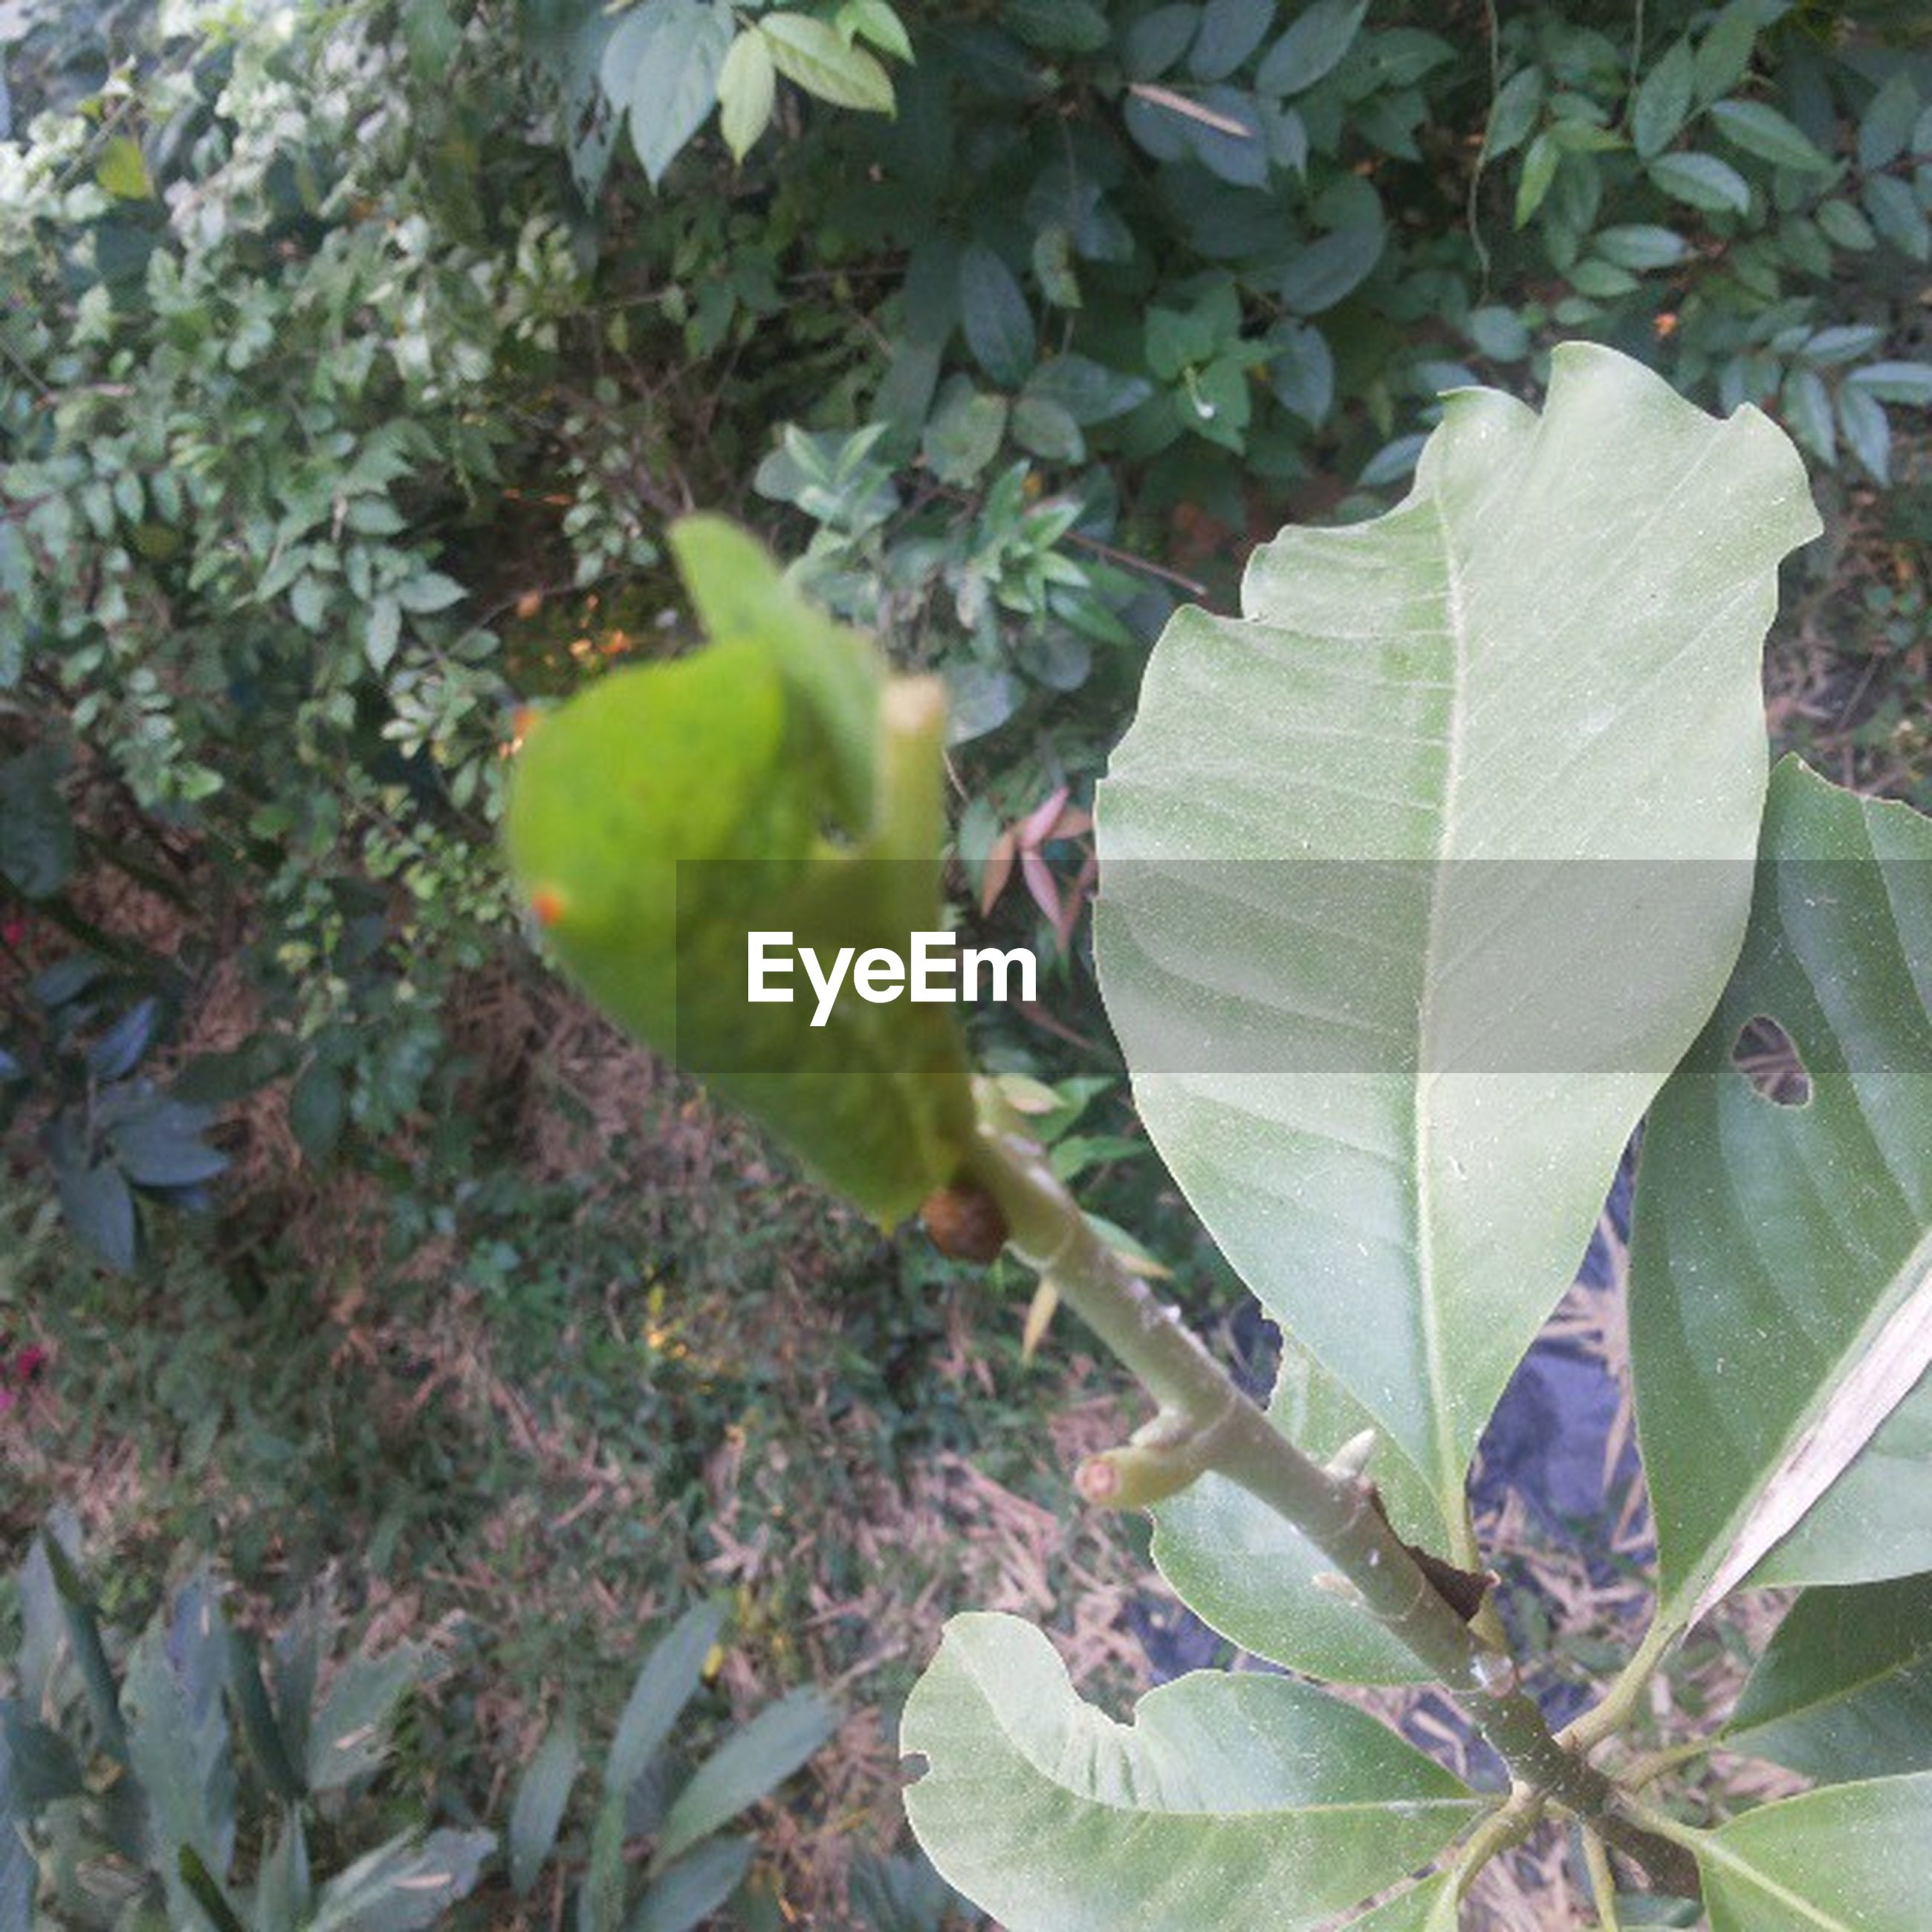 leaf, growth, green color, plant, nature, close-up, leaf vein, leaves, freshness, beauty in nature, growing, day, branch, high angle view, tranquility, outdoors, green, no people, botany, focus on foreground